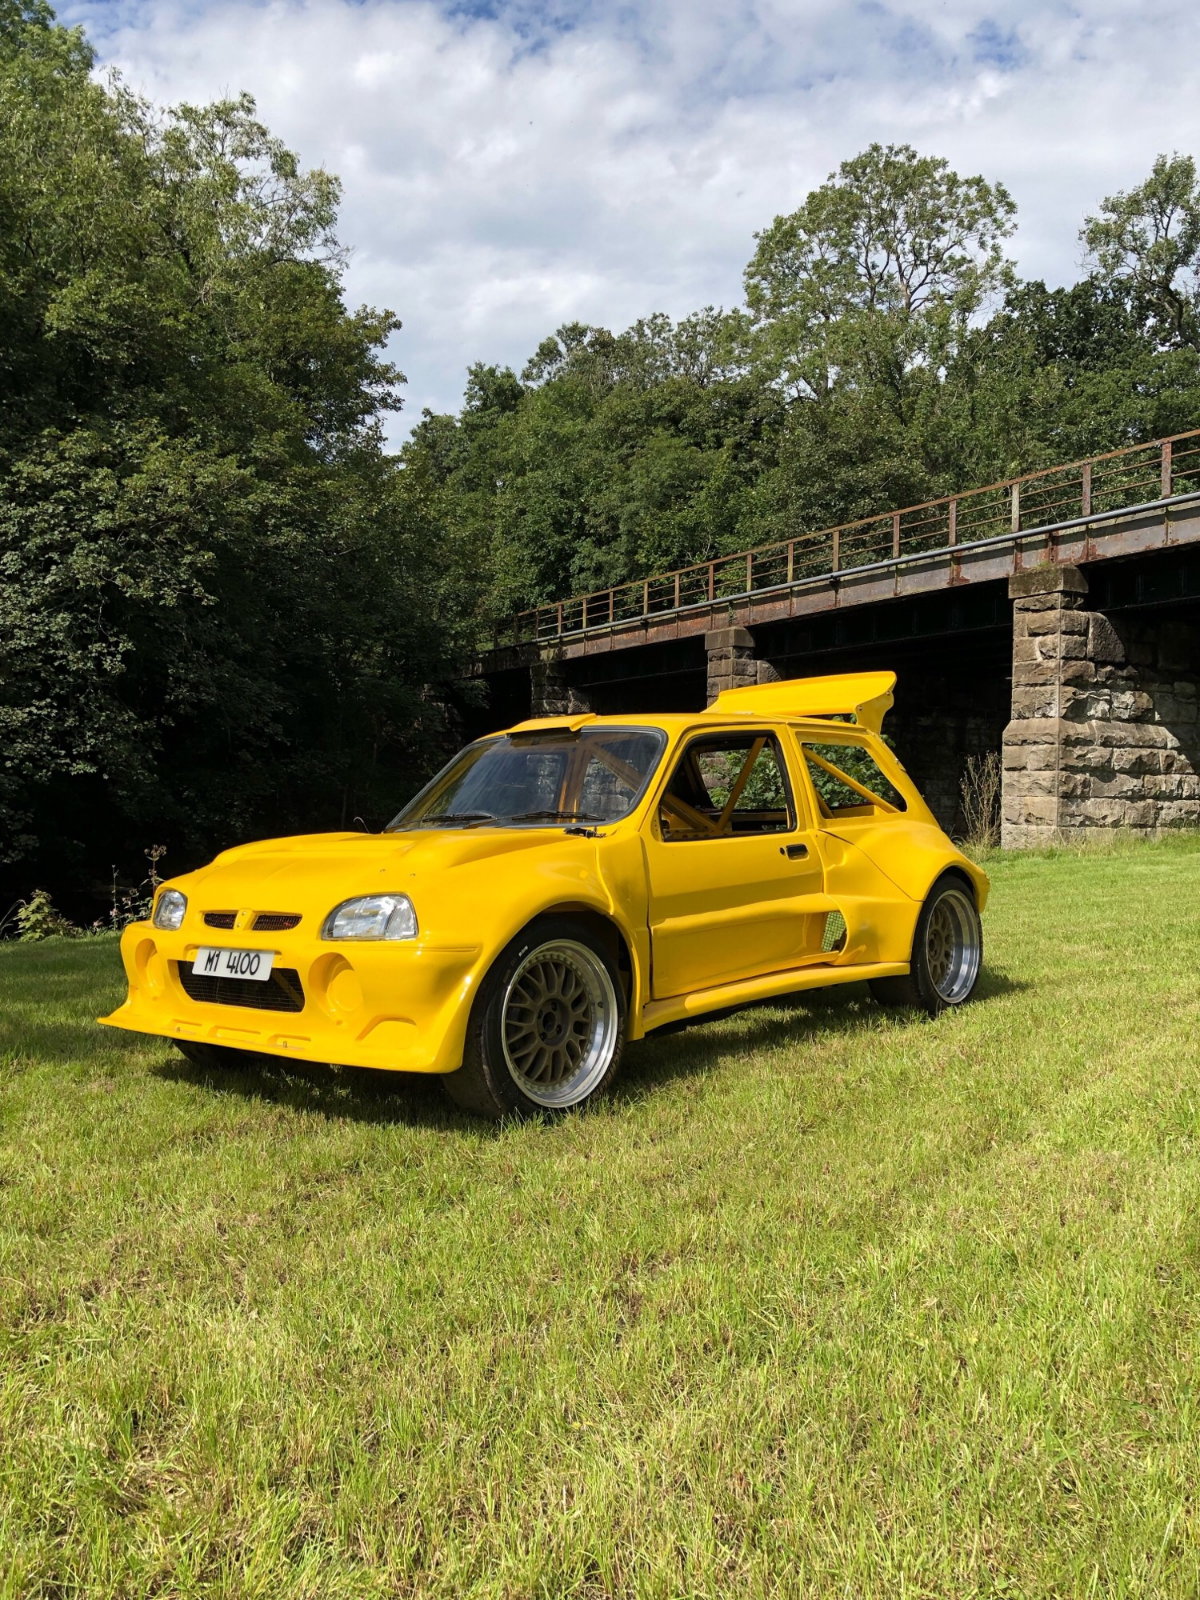 Check out this absolutely mad looking Rover metro shell